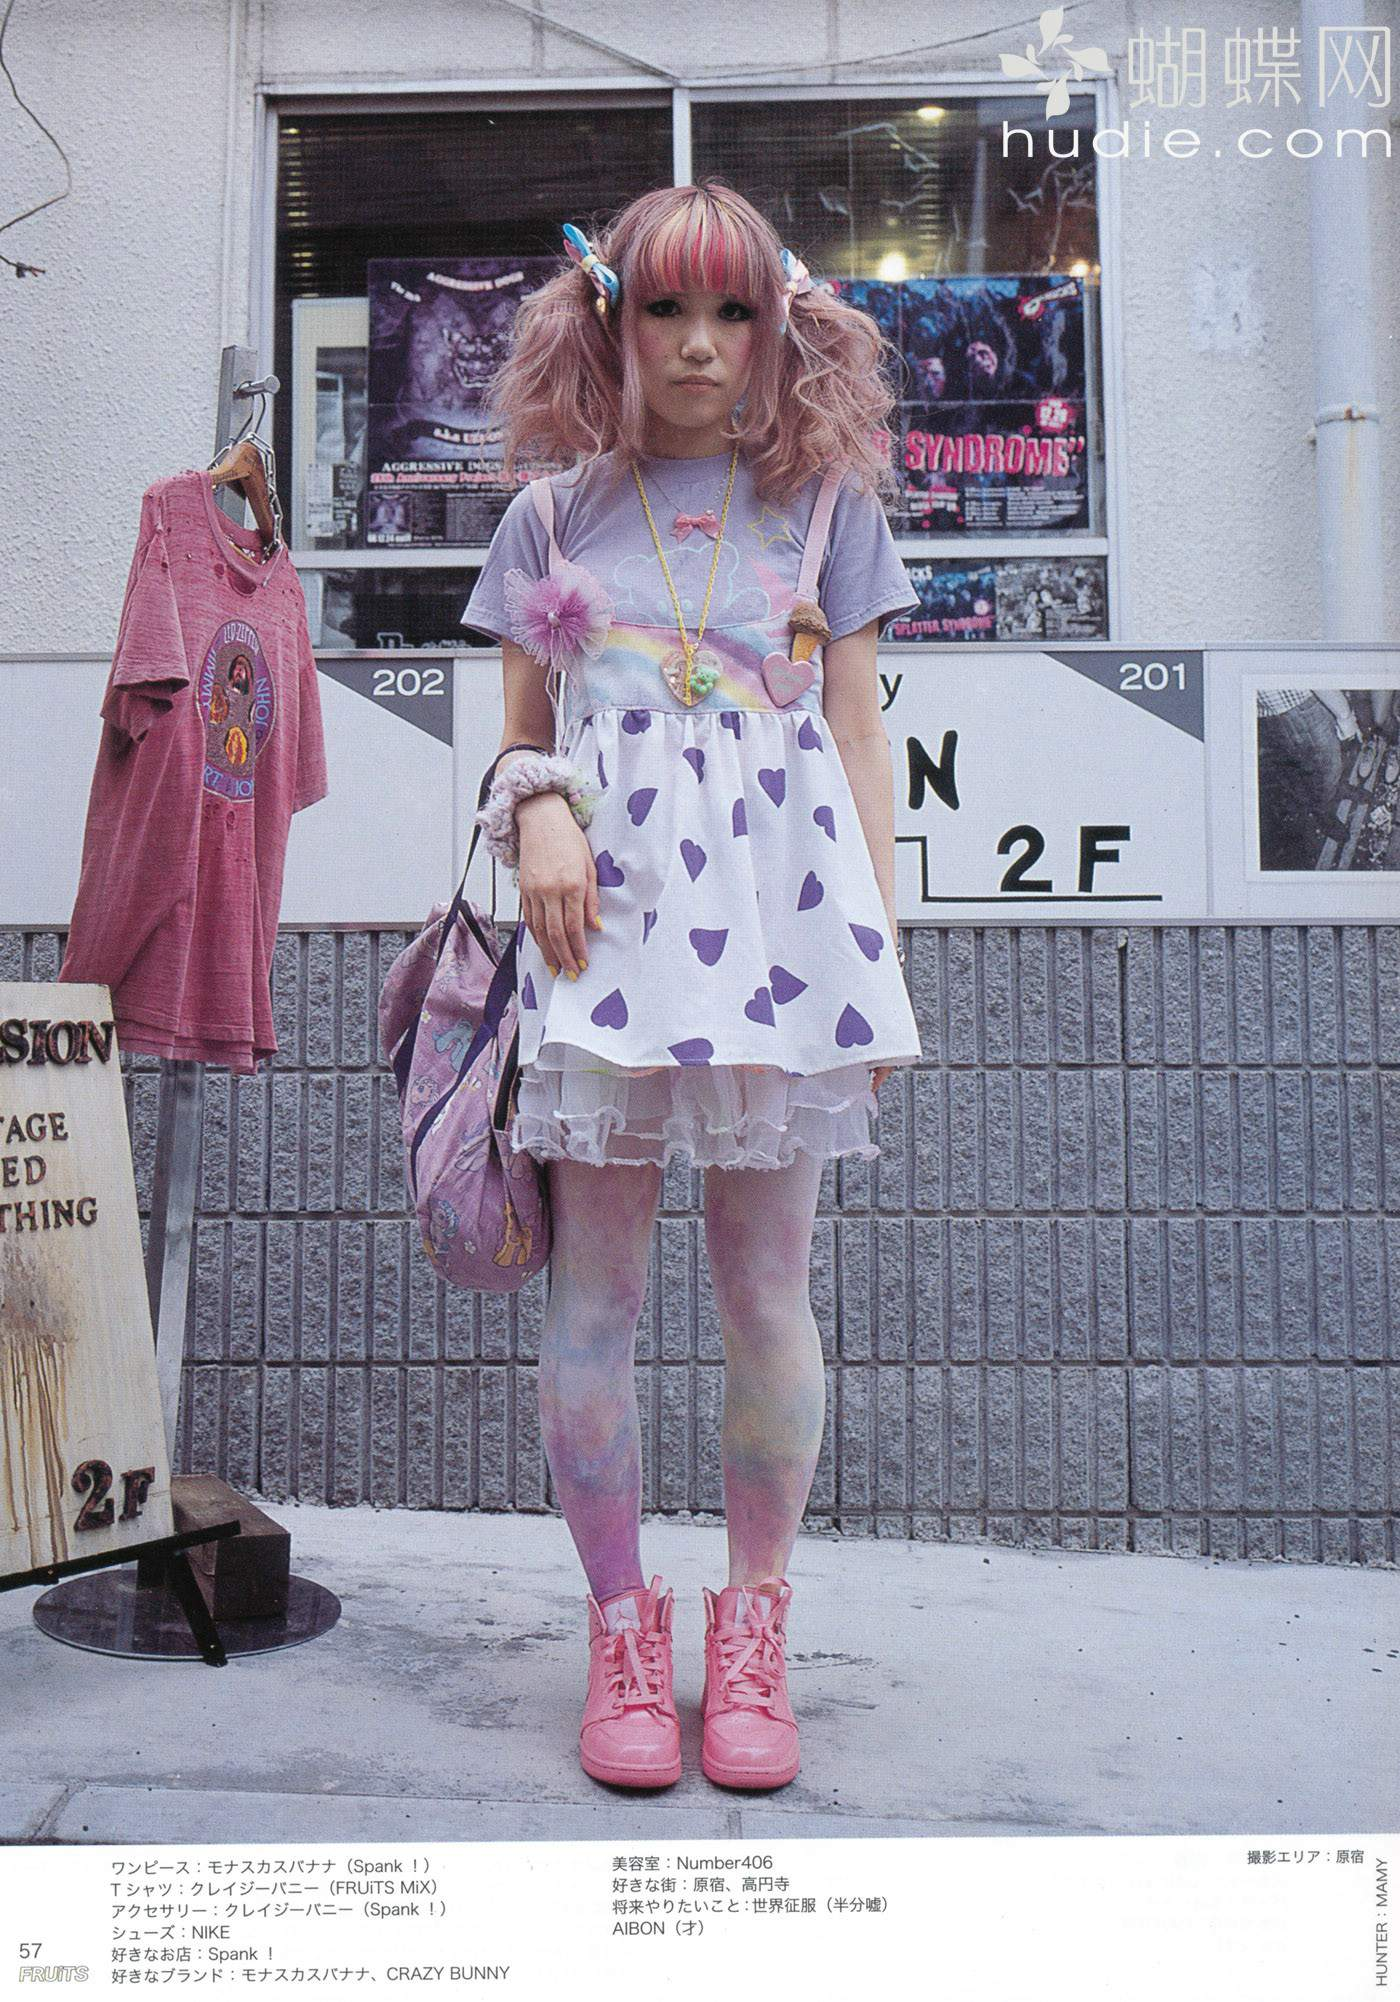 Fruits japanese street fashion magazine GENLUX - Official Site